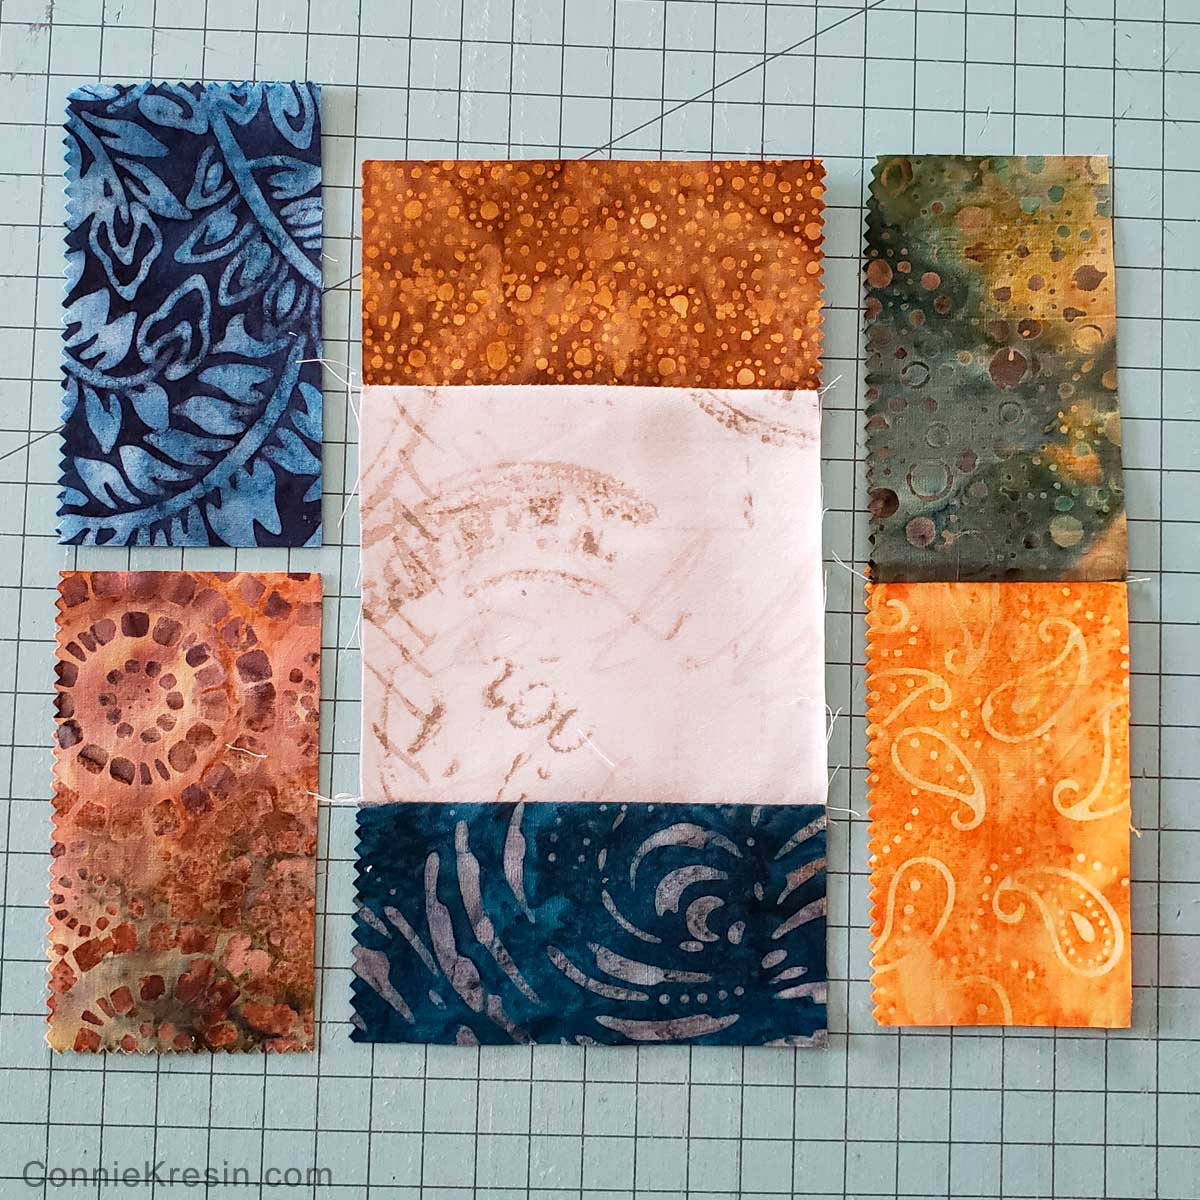 Sew block sections together